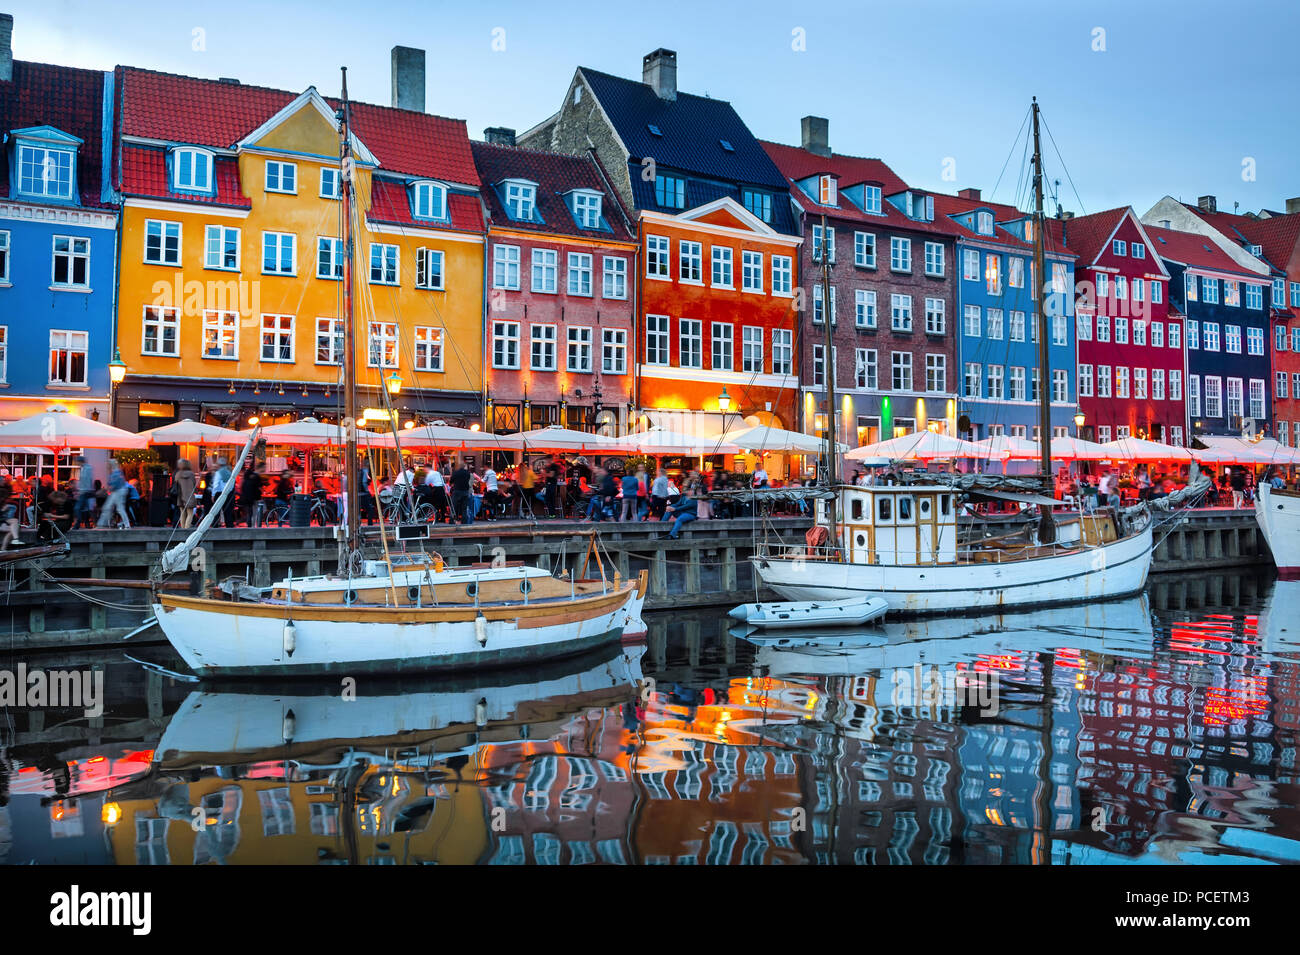 Sailboats moored by Nyhavn promenade illuminated at the evening, Copenhagen old town cityscape, Denmark - Stock Image